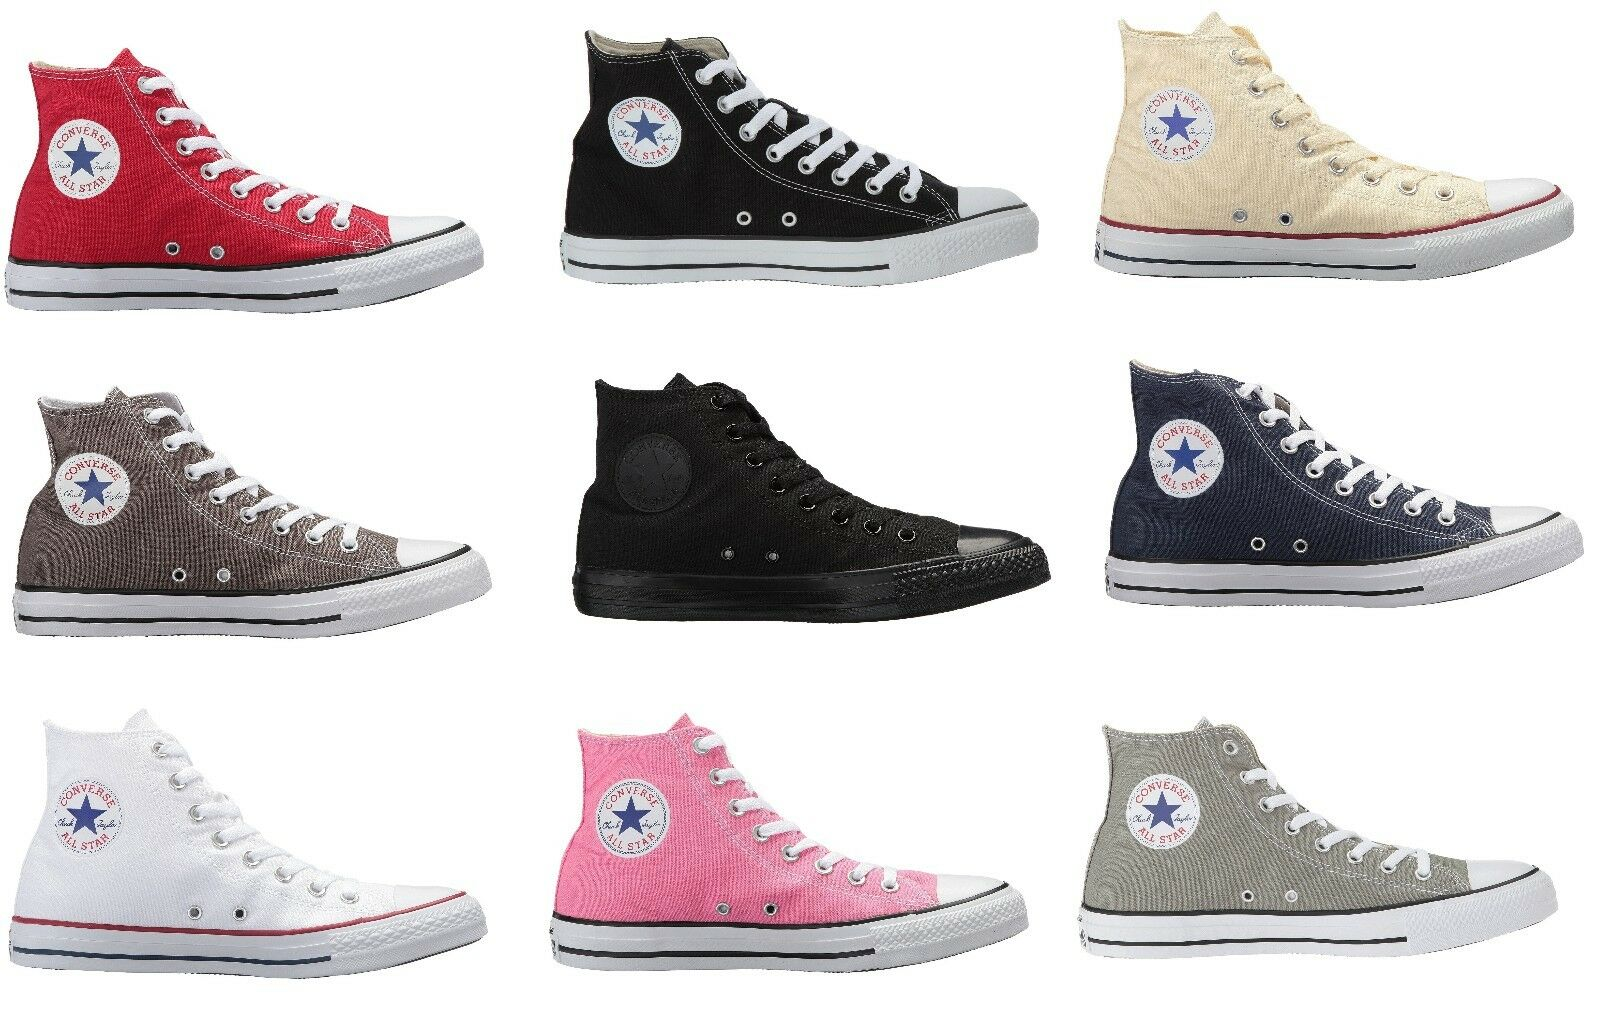 NEW Converse Chuck Taylor All Star High Top Canvas Casual Scarpe da Ginnastica Unisex Scarpe